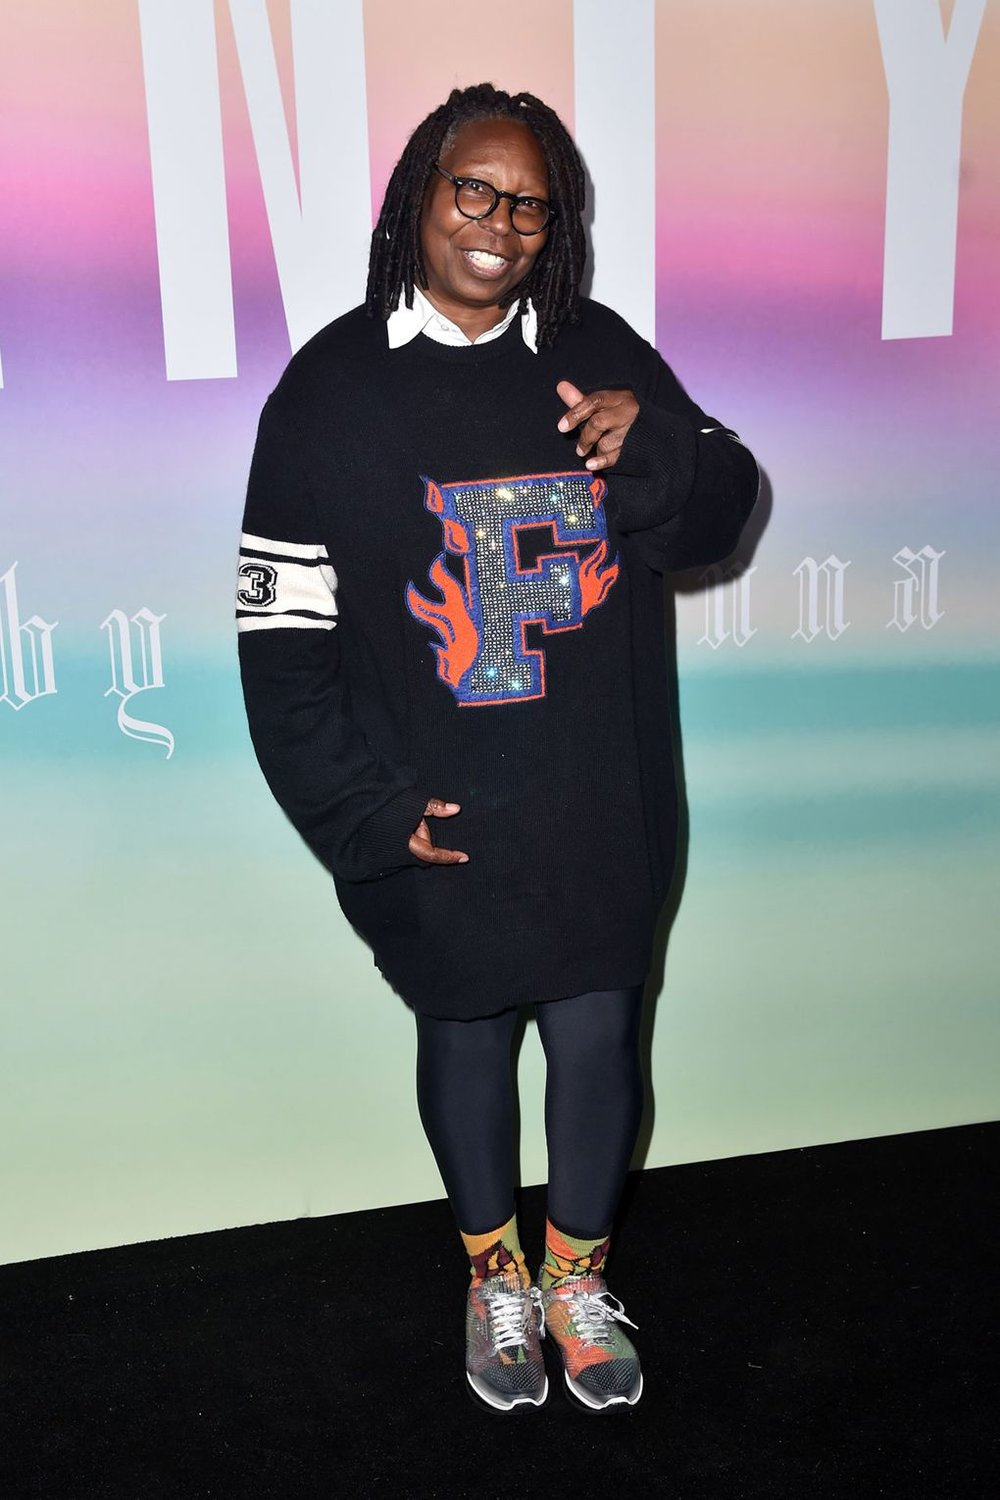 #1The Front Row - Alongside Rihanna's fellow artists Cardi B and Diplo, Whoopi Goldberg took a front row-view of the motorcross spectacle. Just as the model line-up was a celebration of diversity, the FROW proved that when it comes to wearing Fenty x Puma, everyone looks sassy. Shout out to Goldberg's socks too.